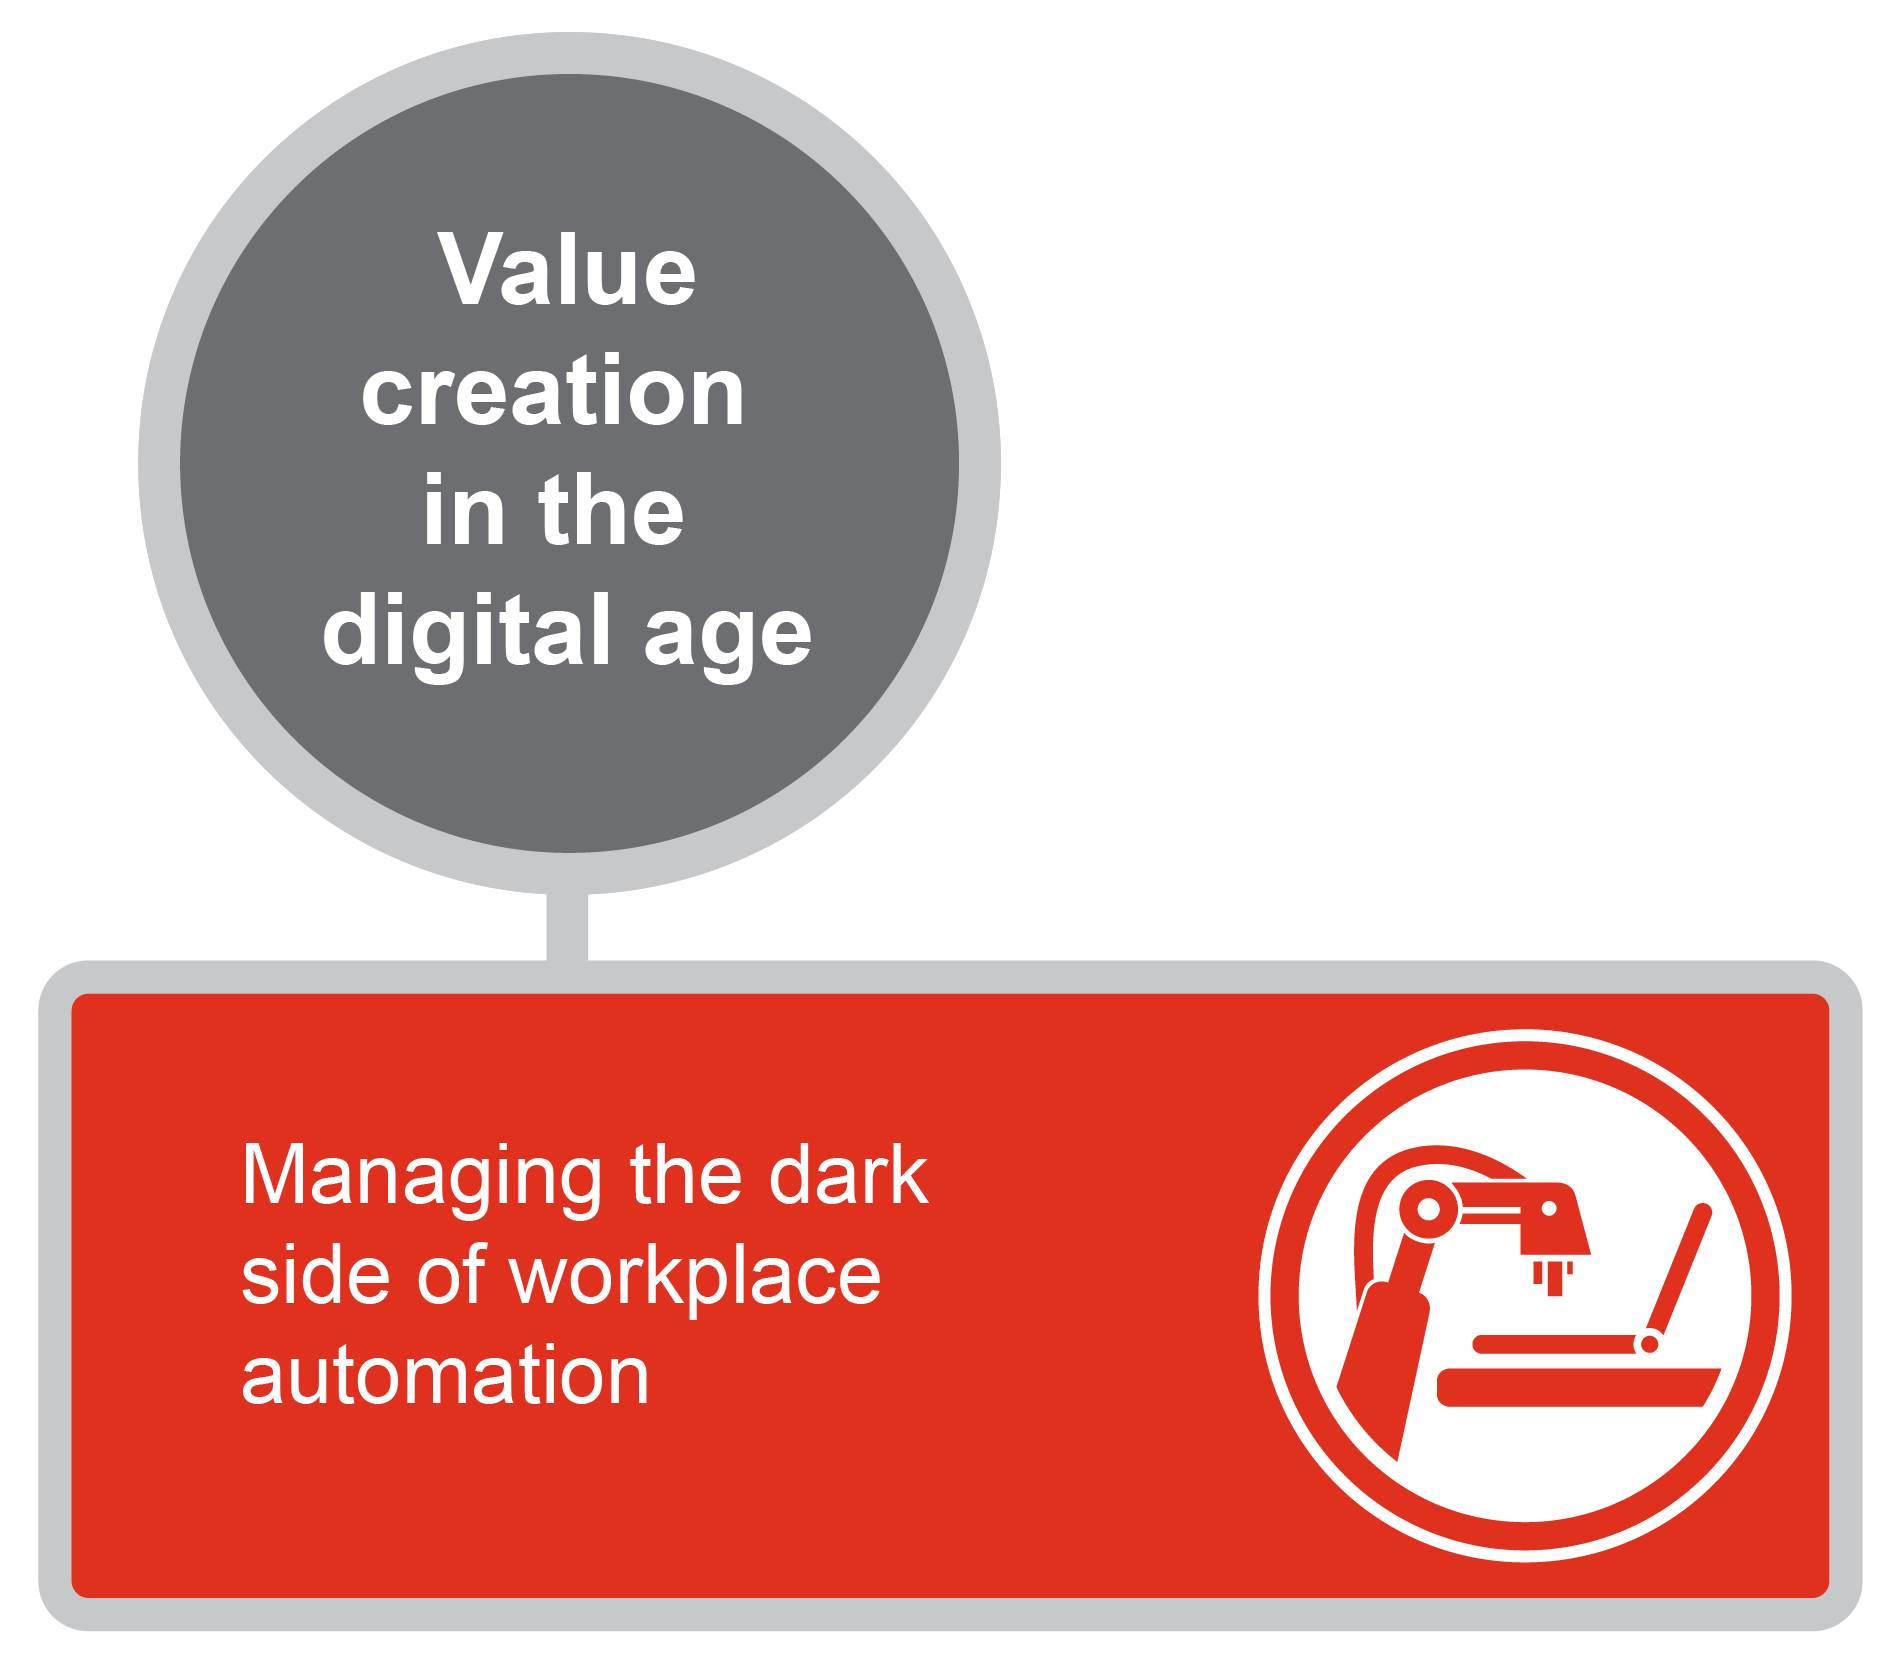 Managing the dark side of workplace automation graphic